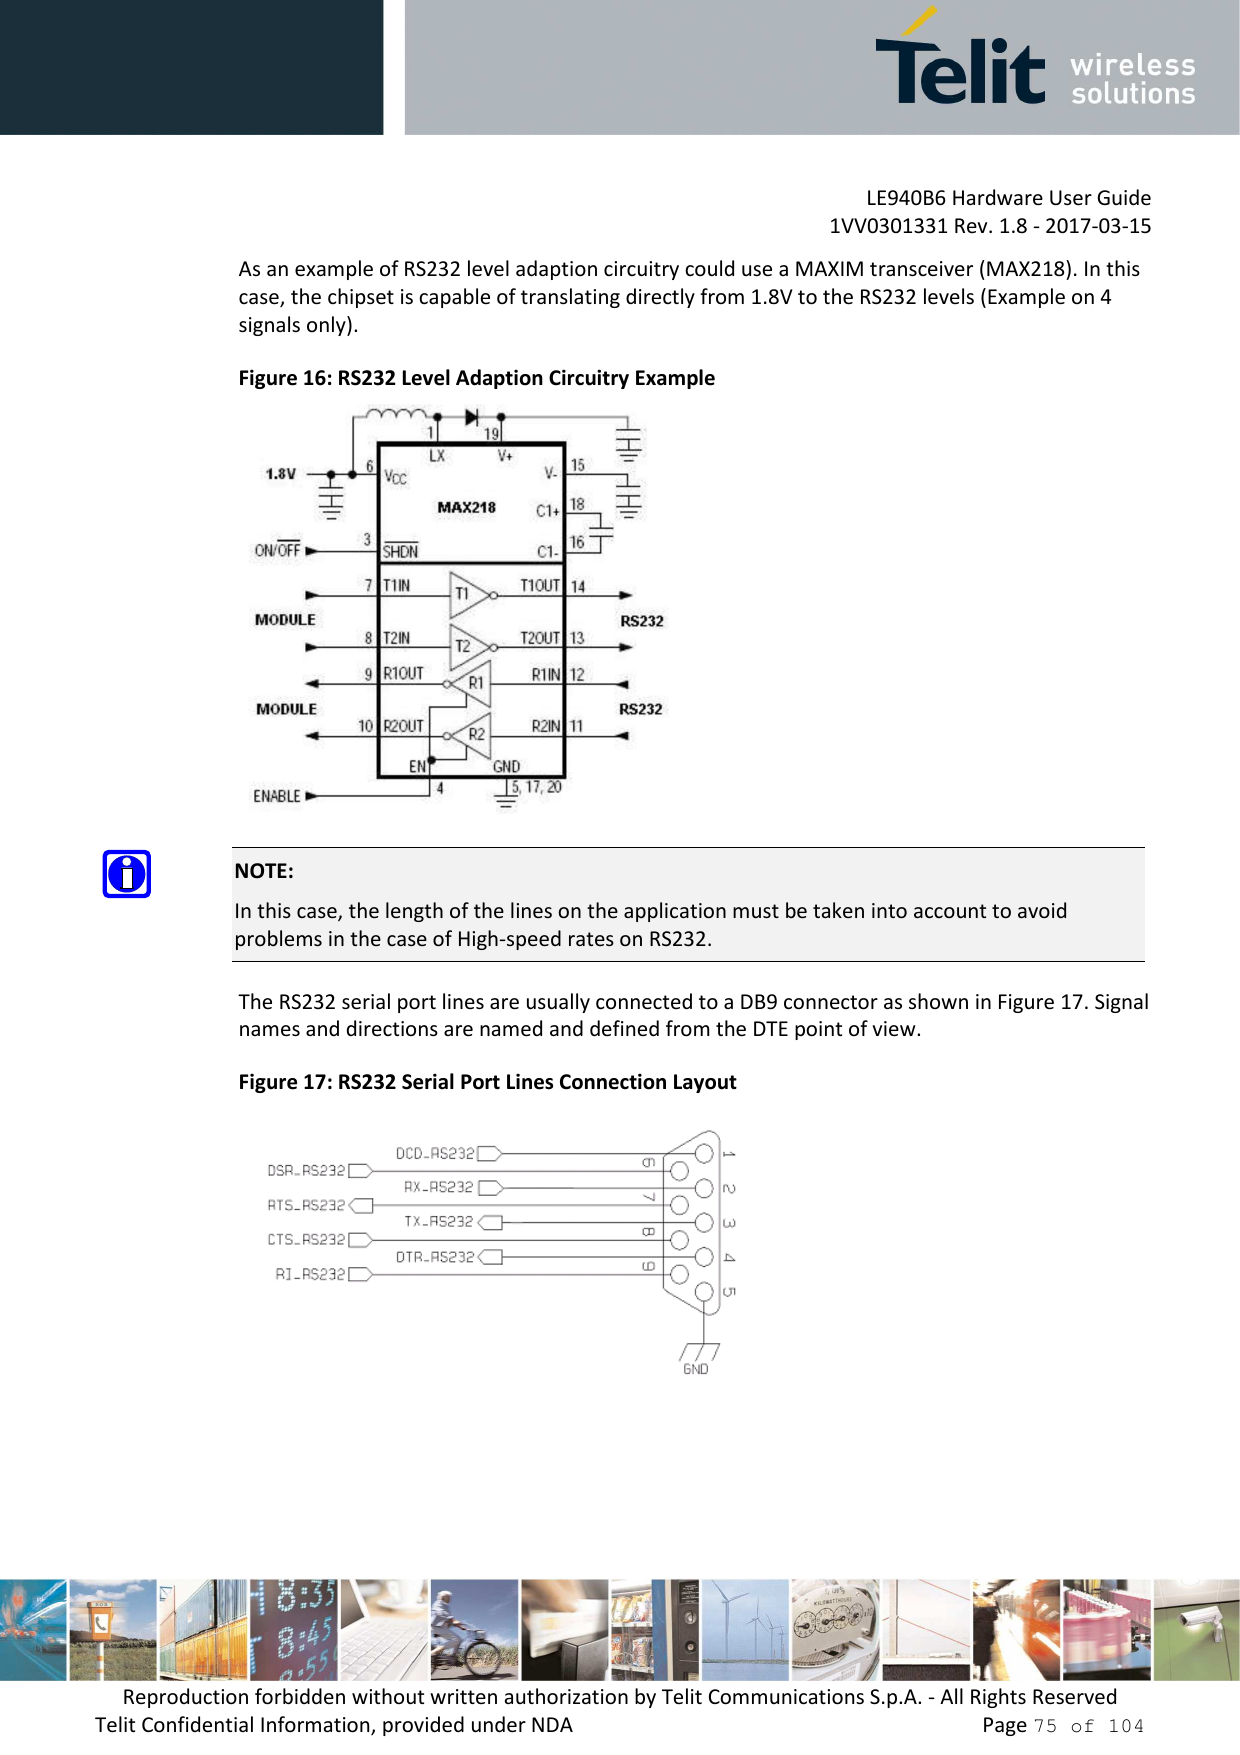 LE940B6 Hardware User Guide     1VV0301331 Rev. 1.8 - 2017-03-15 Reproduction forbidden without written authorization by Telit Communications S.p.A. - All Rights Reserved Telit Confidential Information, provided under NDA                 Page 75 of 104 As an example of RS232 level adaption circuitry could use a MAXIM transceiver (MAX218). In this case, the chipset is capable of translating directly from 1.8V to the RS232 levels (Example on 4 signals only). Figure 16: RS232 Level Adaption Circuitry Example   NOTE: In this case, the length of the lines on the application must be taken into account to avoid problems in the case of High-speed rates on RS232. The RS232 serial port lines are usually connected to a DB9 connector as shown in Figure 17. Signal names and directions are named and defined from the DTE point of view. Figure 17: RS232 Serial Port Lines Connection Layout